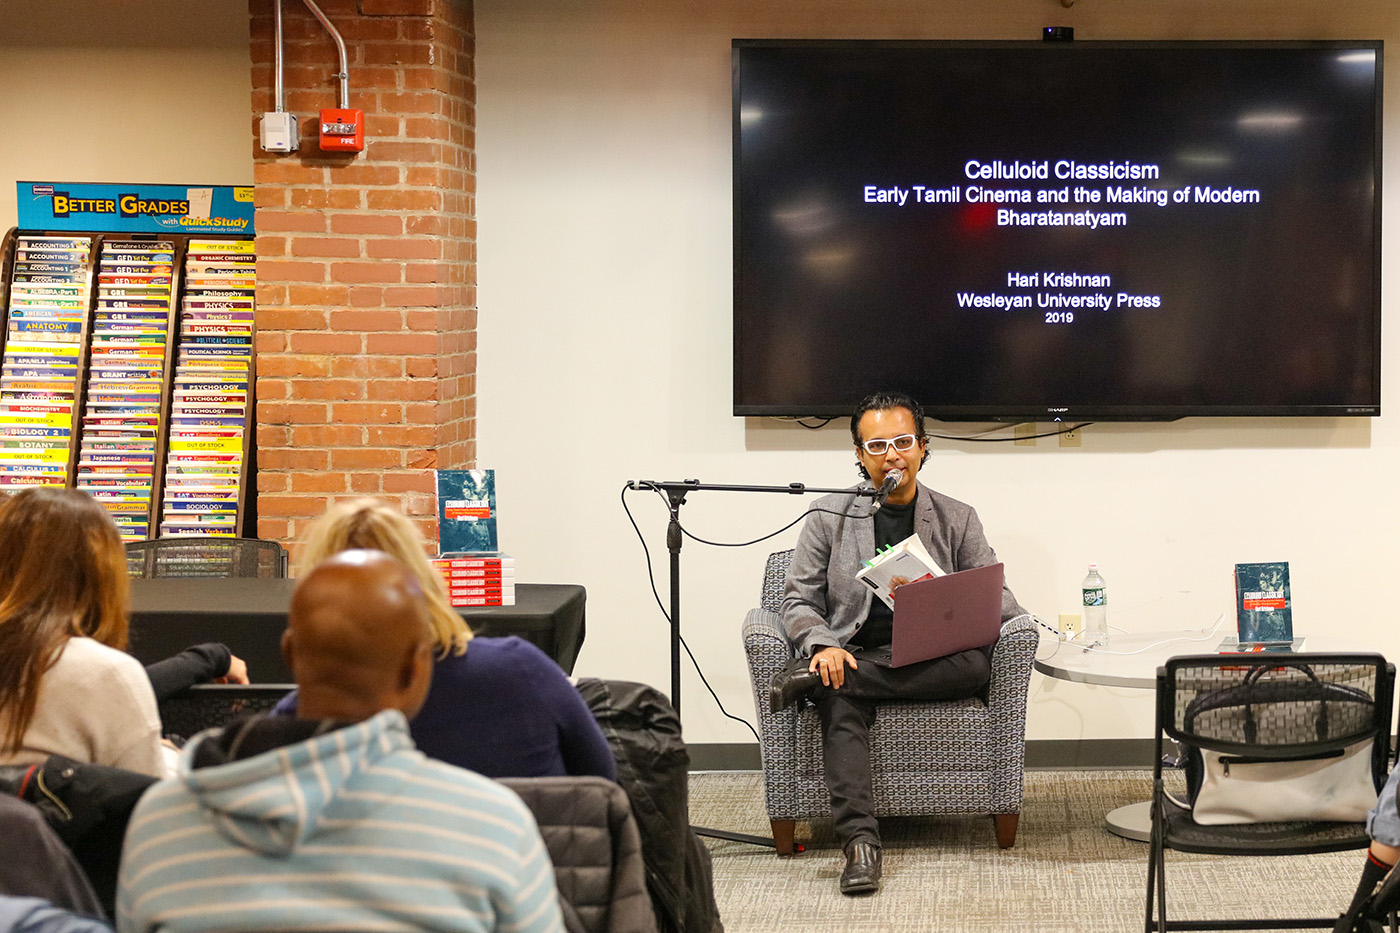 On Dec. 3, Hari Krishnan, associate professor of dance, presented a talk about his new book, Celluloid Classicism: Early Tamil Cinema and the Making of Modern Bharatanatyam, at the Wesleyan RJ Julia Bookstore.